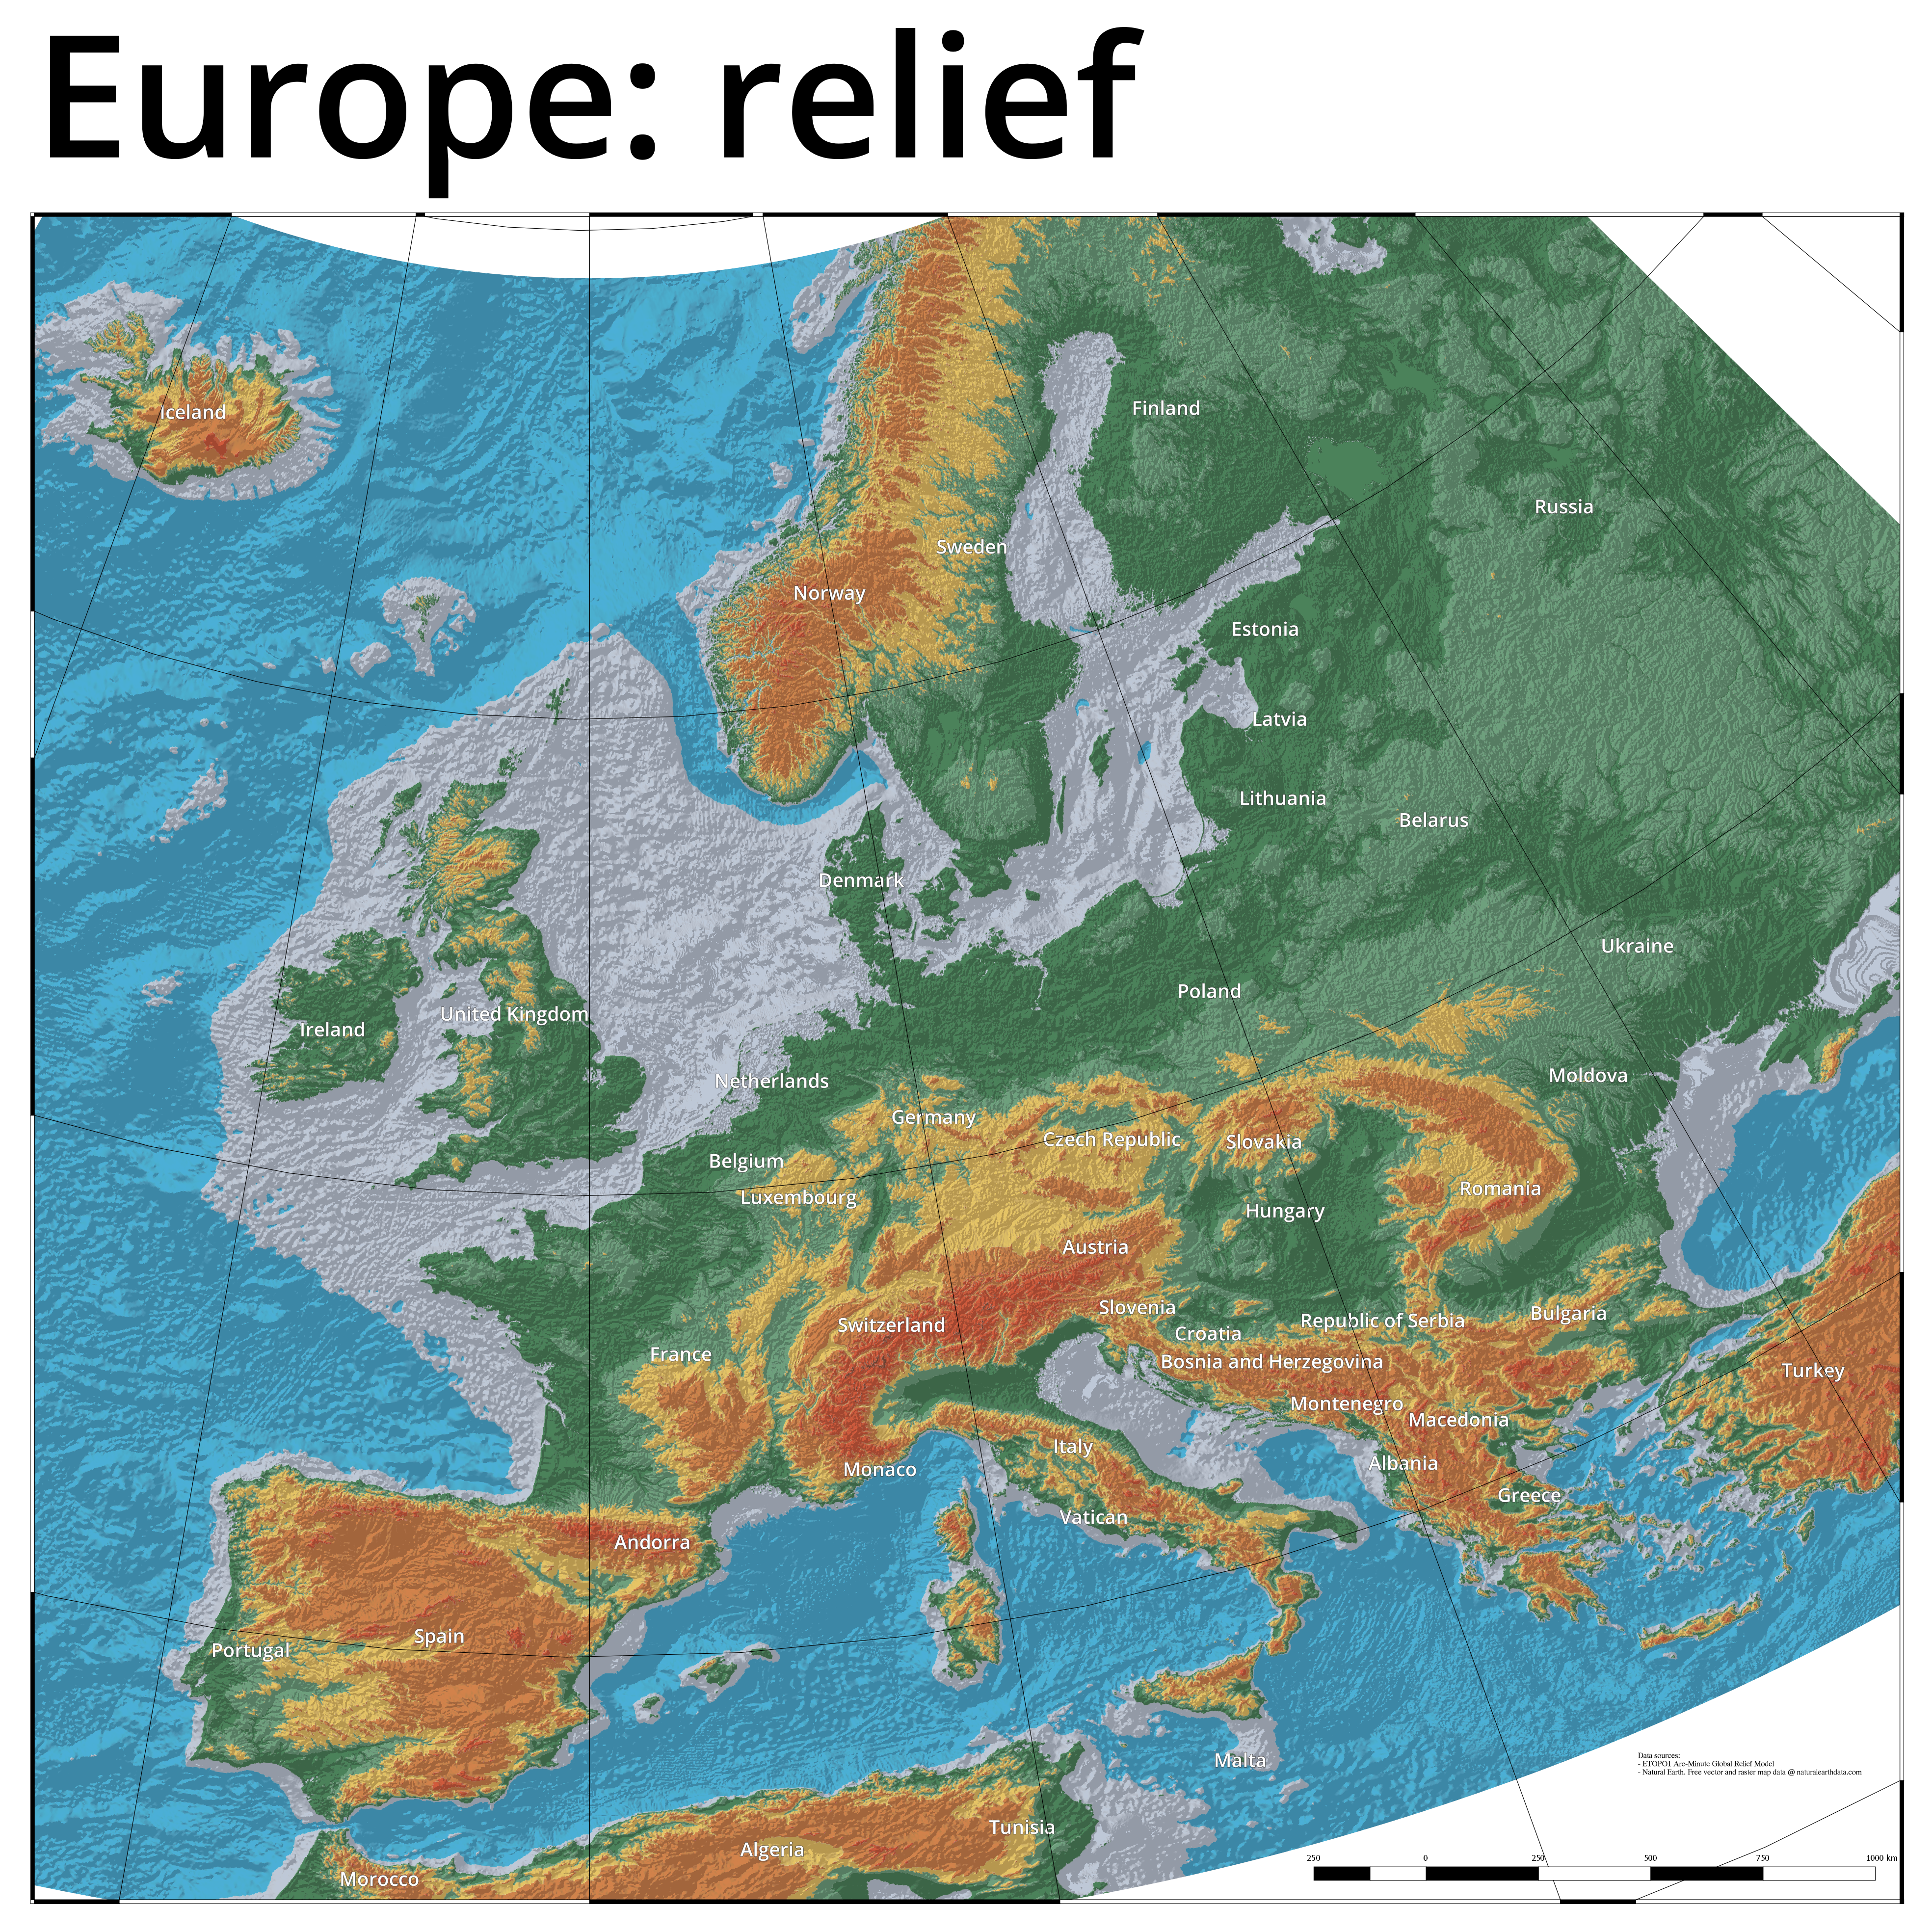 High Resolution Map Of Europe.A Relief Map Of Europe Made With Qgis Stuyts Xyz